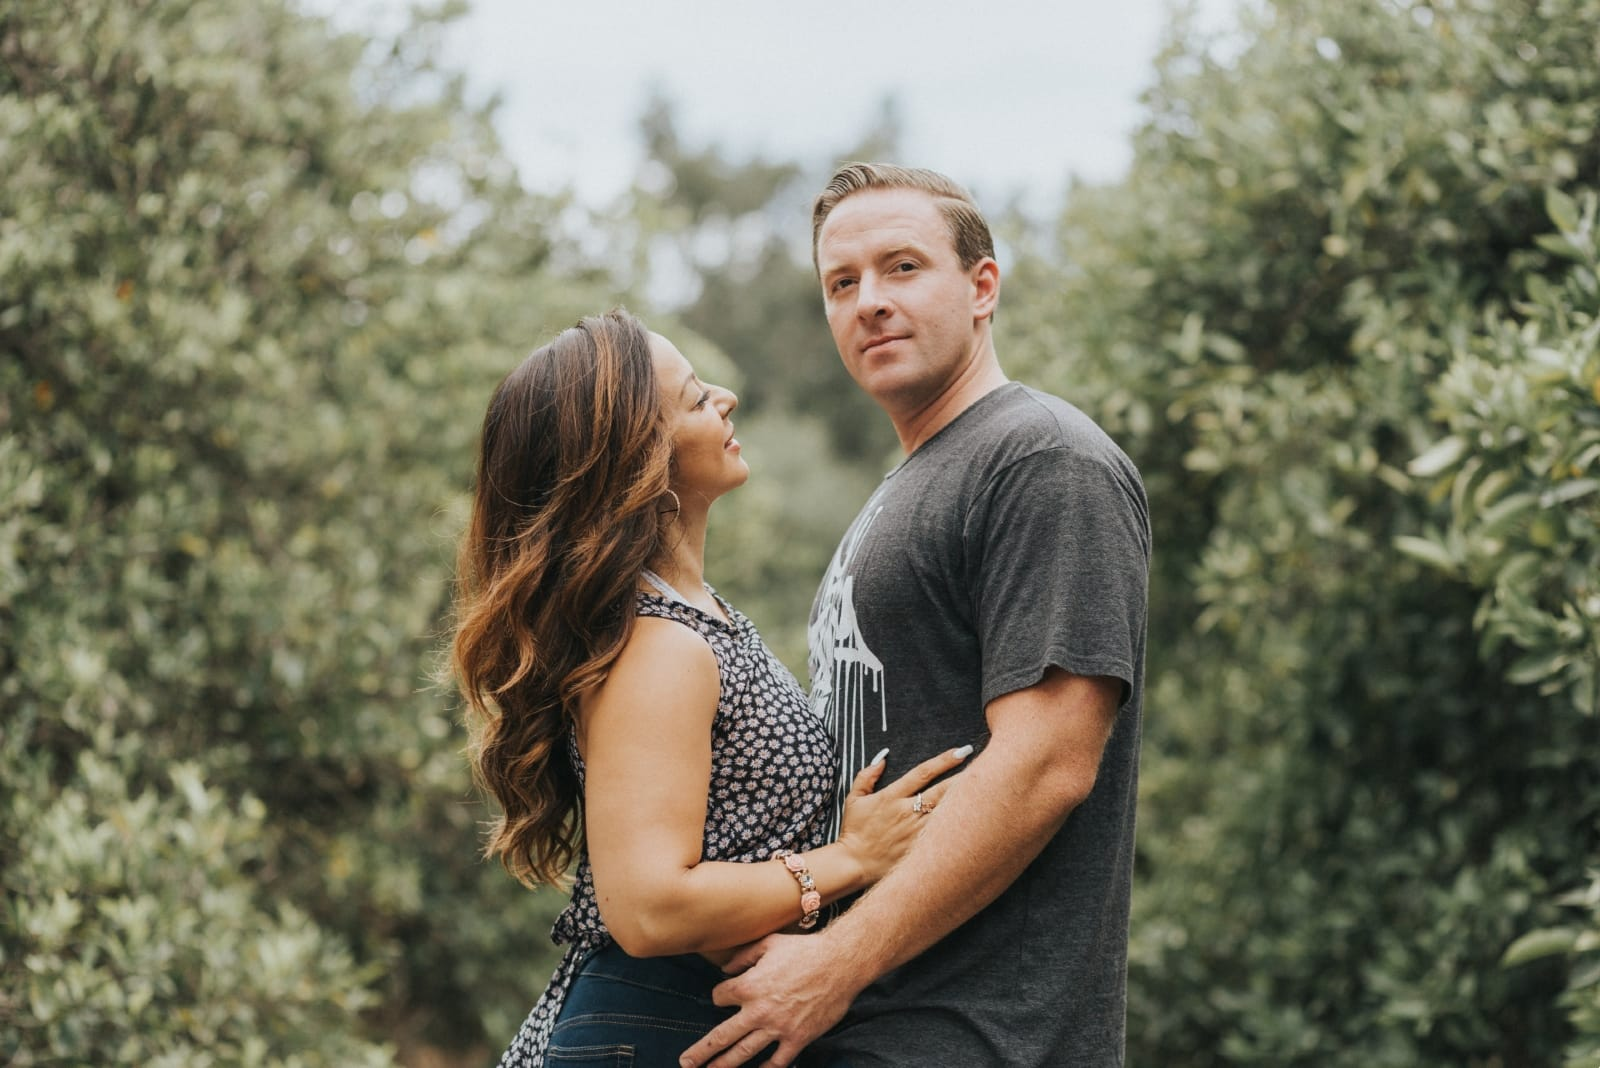 woman hugging man while standing near trees